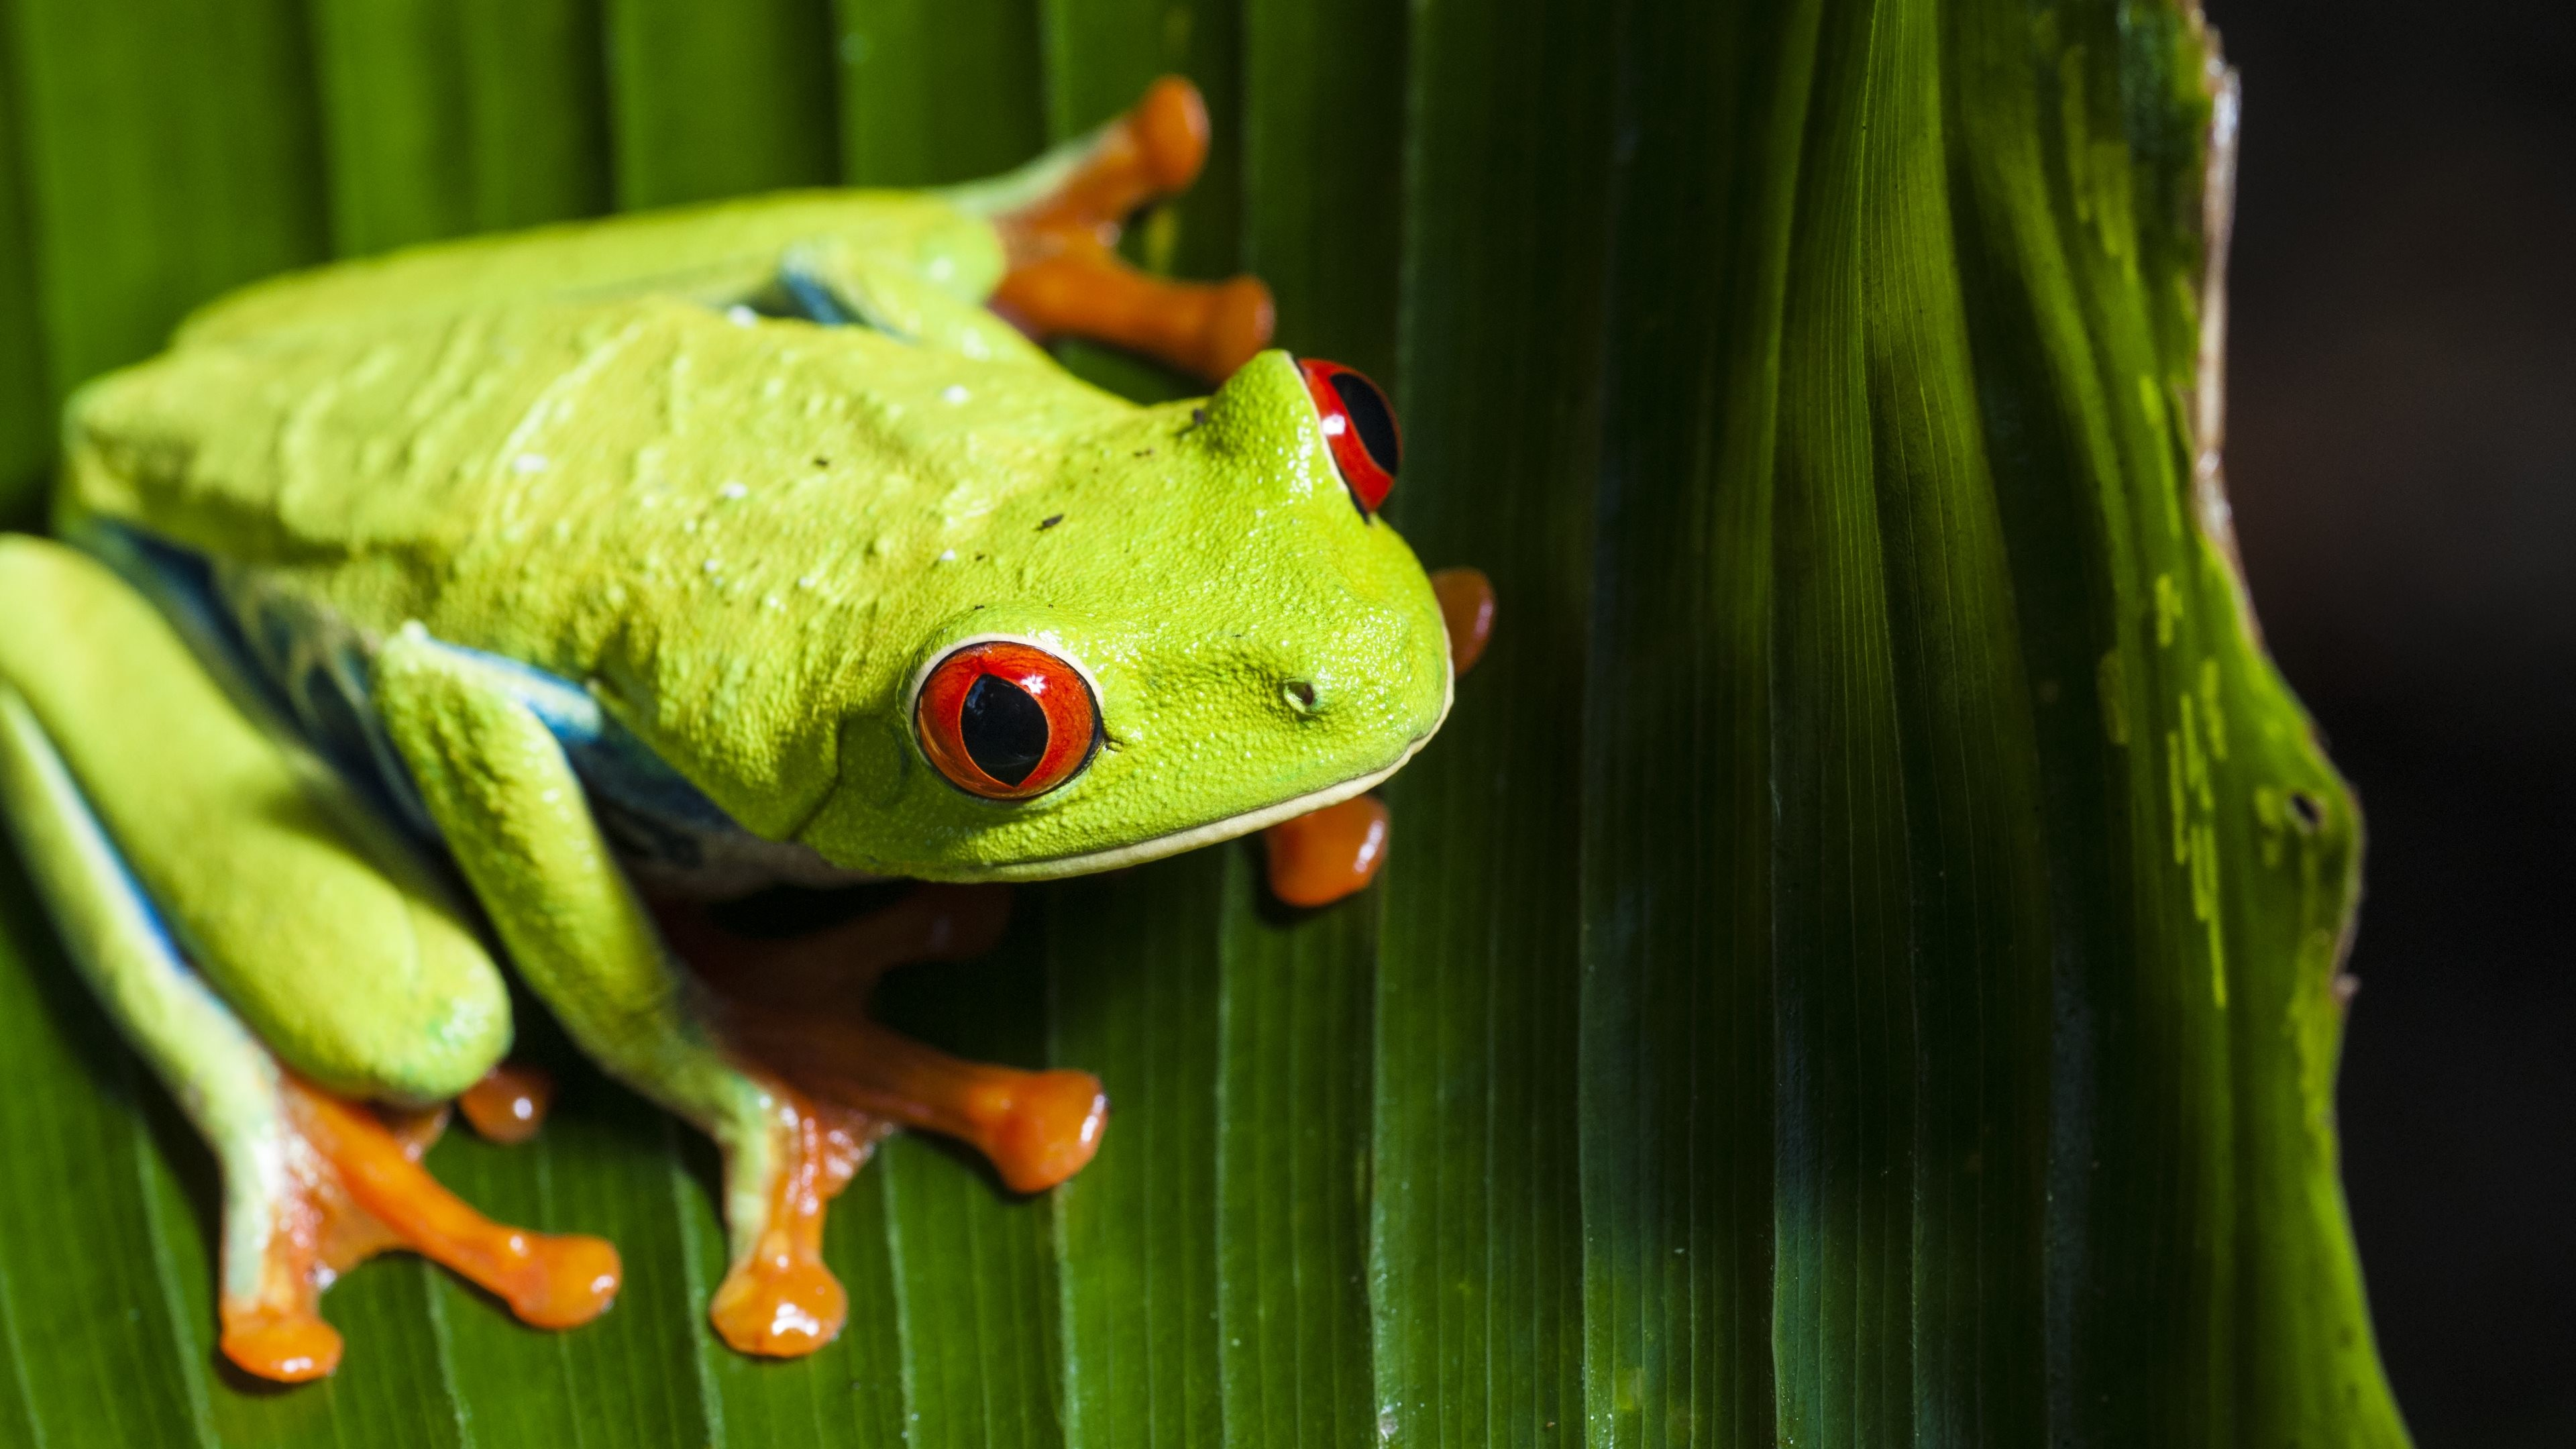 Res: 3840x2160, Red Eyed Tree Frog Wallpapers 13 - 3840 X 2160